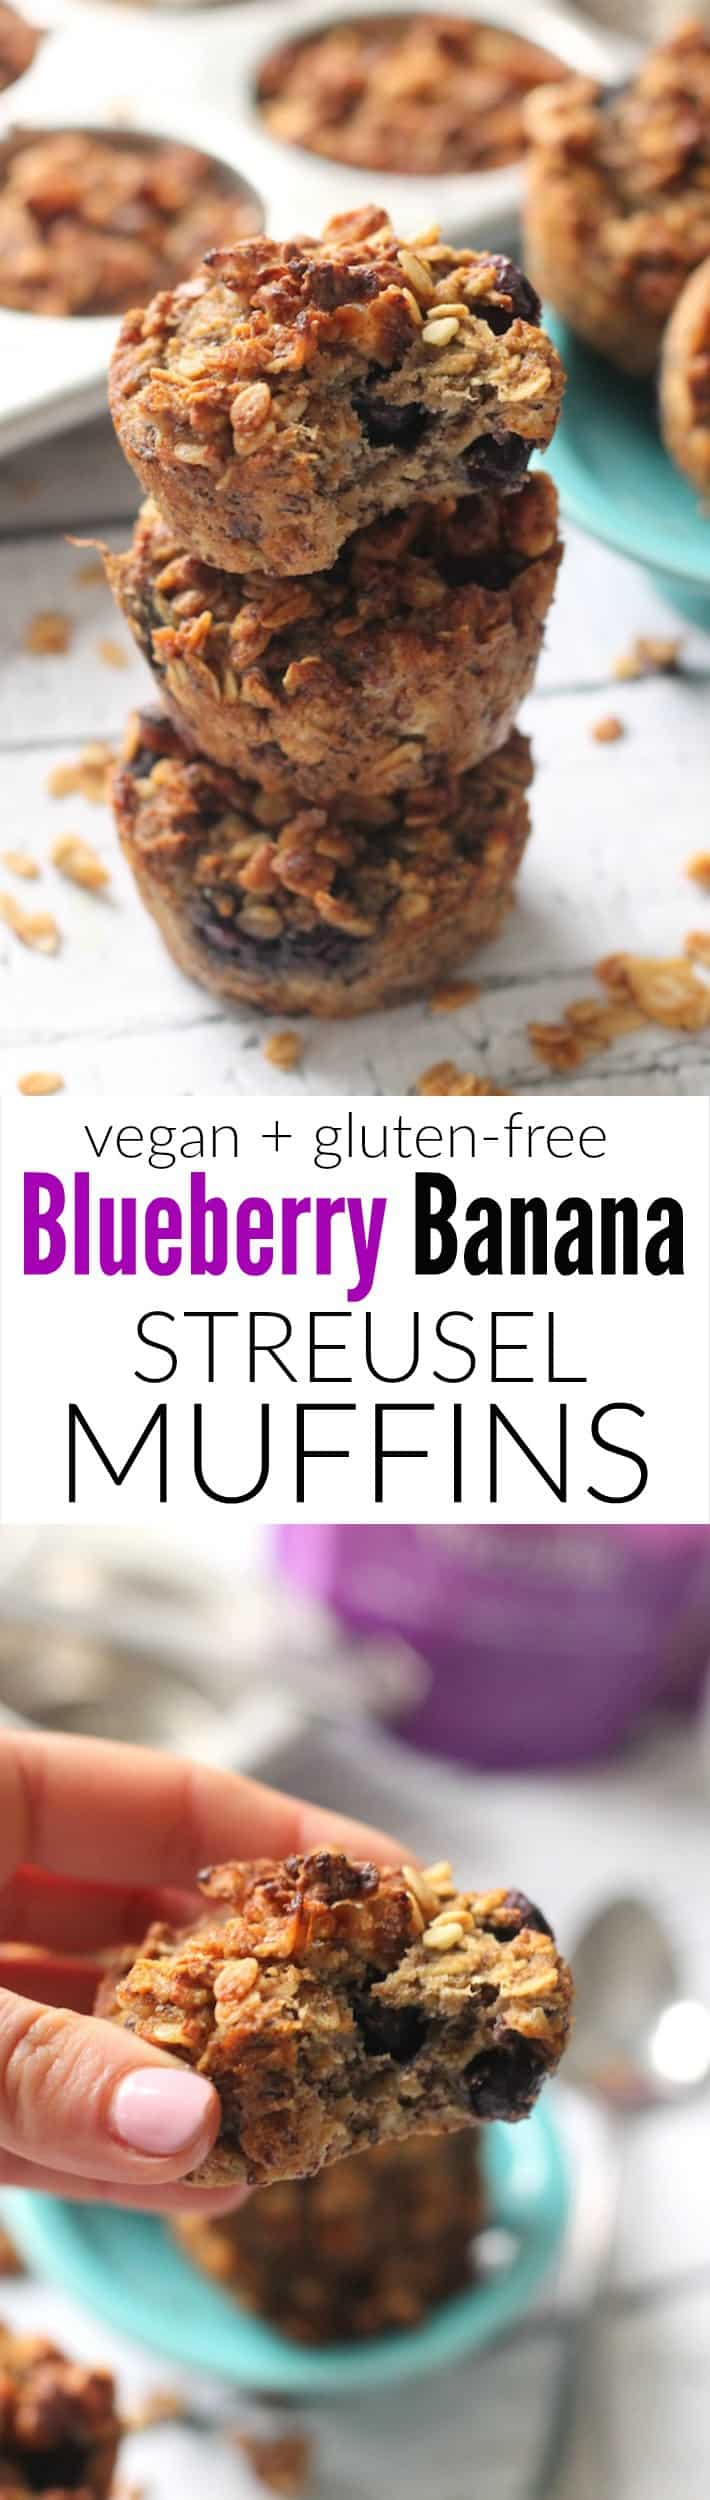 Blueberry Banana Streusel Muffins---easy, moist, oil-free, vegan, and gluten-free!